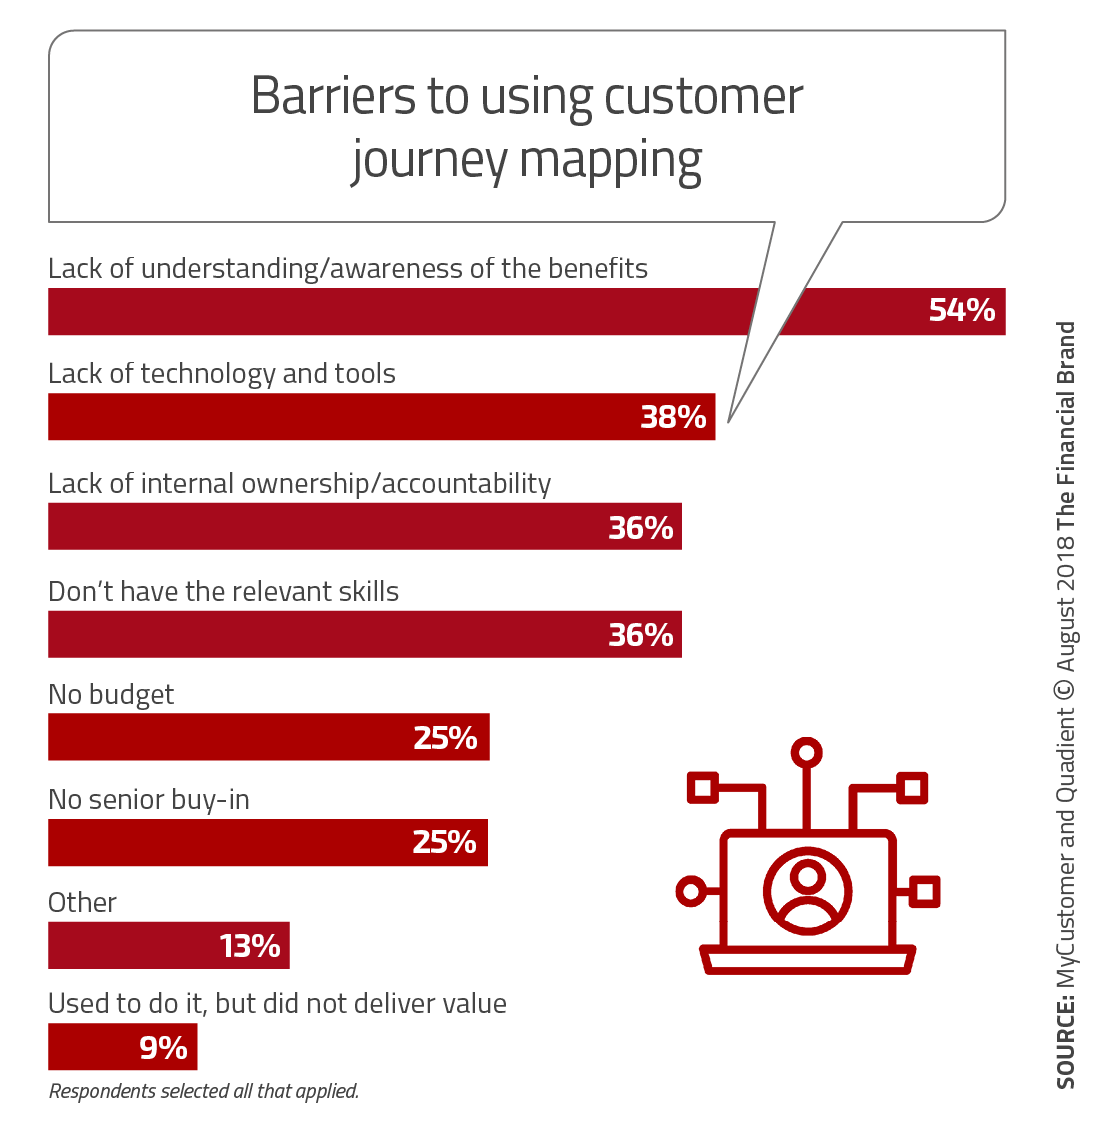 Customer Journey Mapping Provides Path to Digital Banking